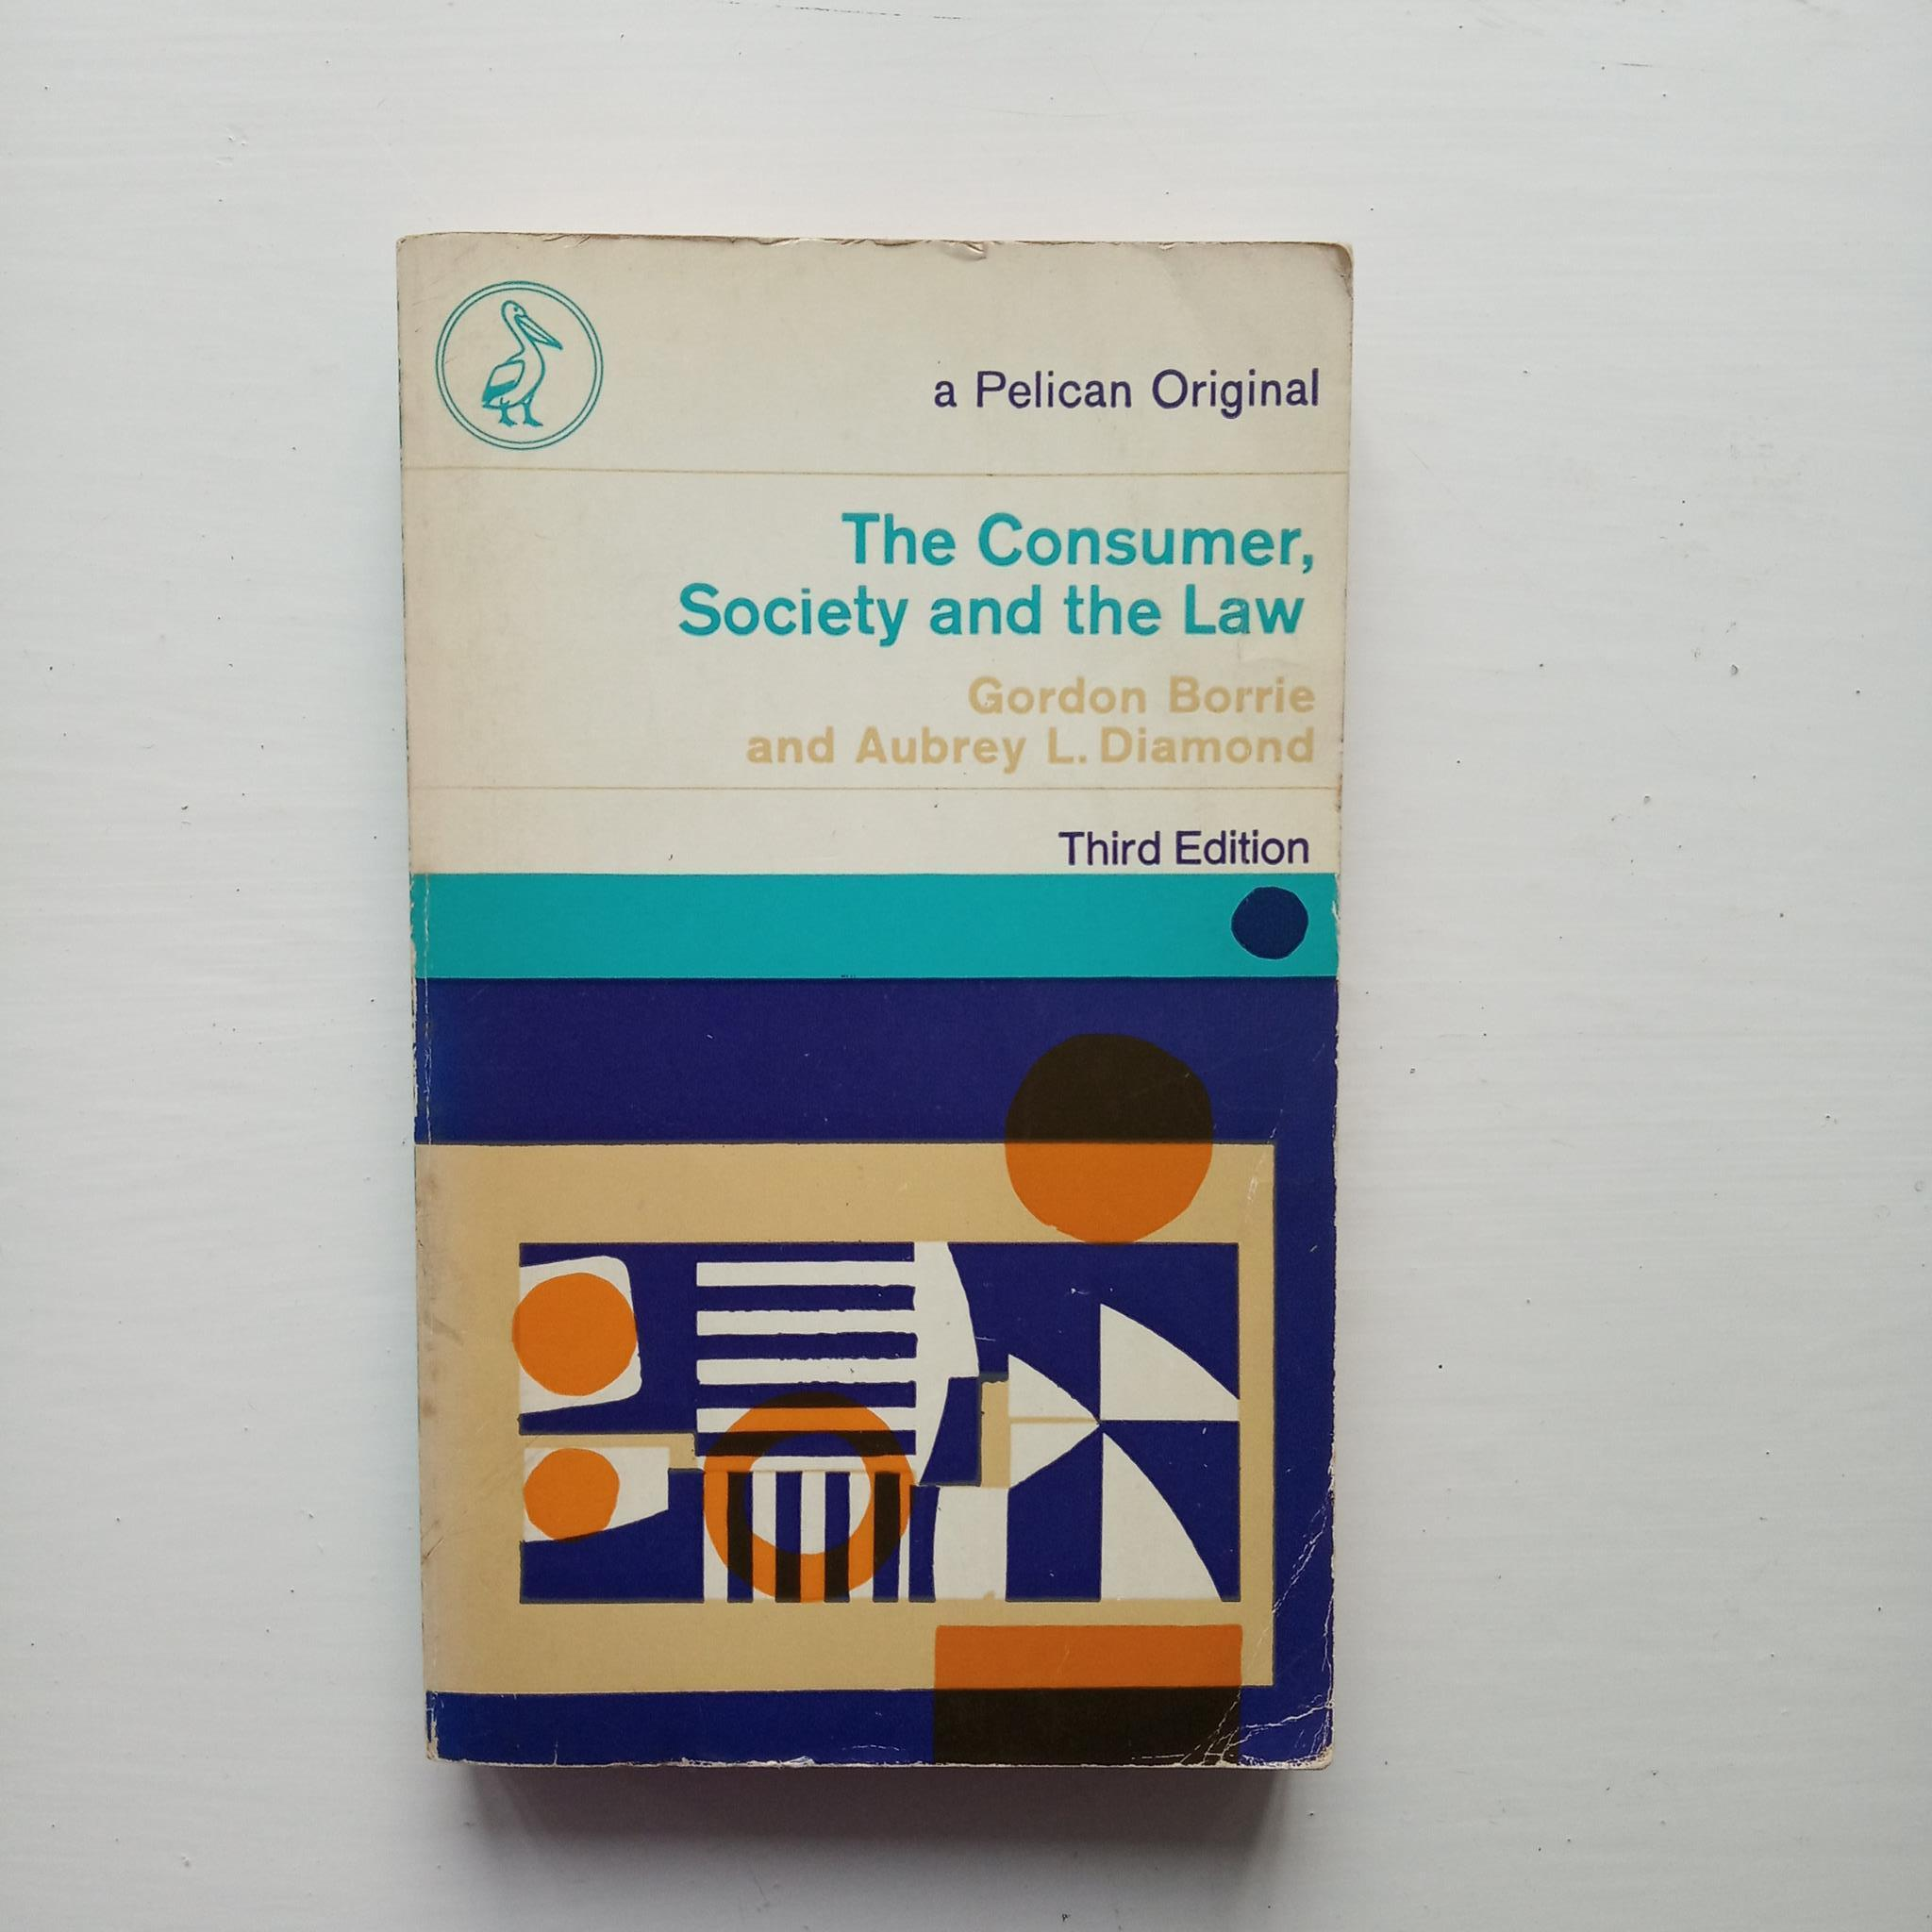 The Consumer, Society and the Law by Gordon Borrie and Aubrey L. Diamond